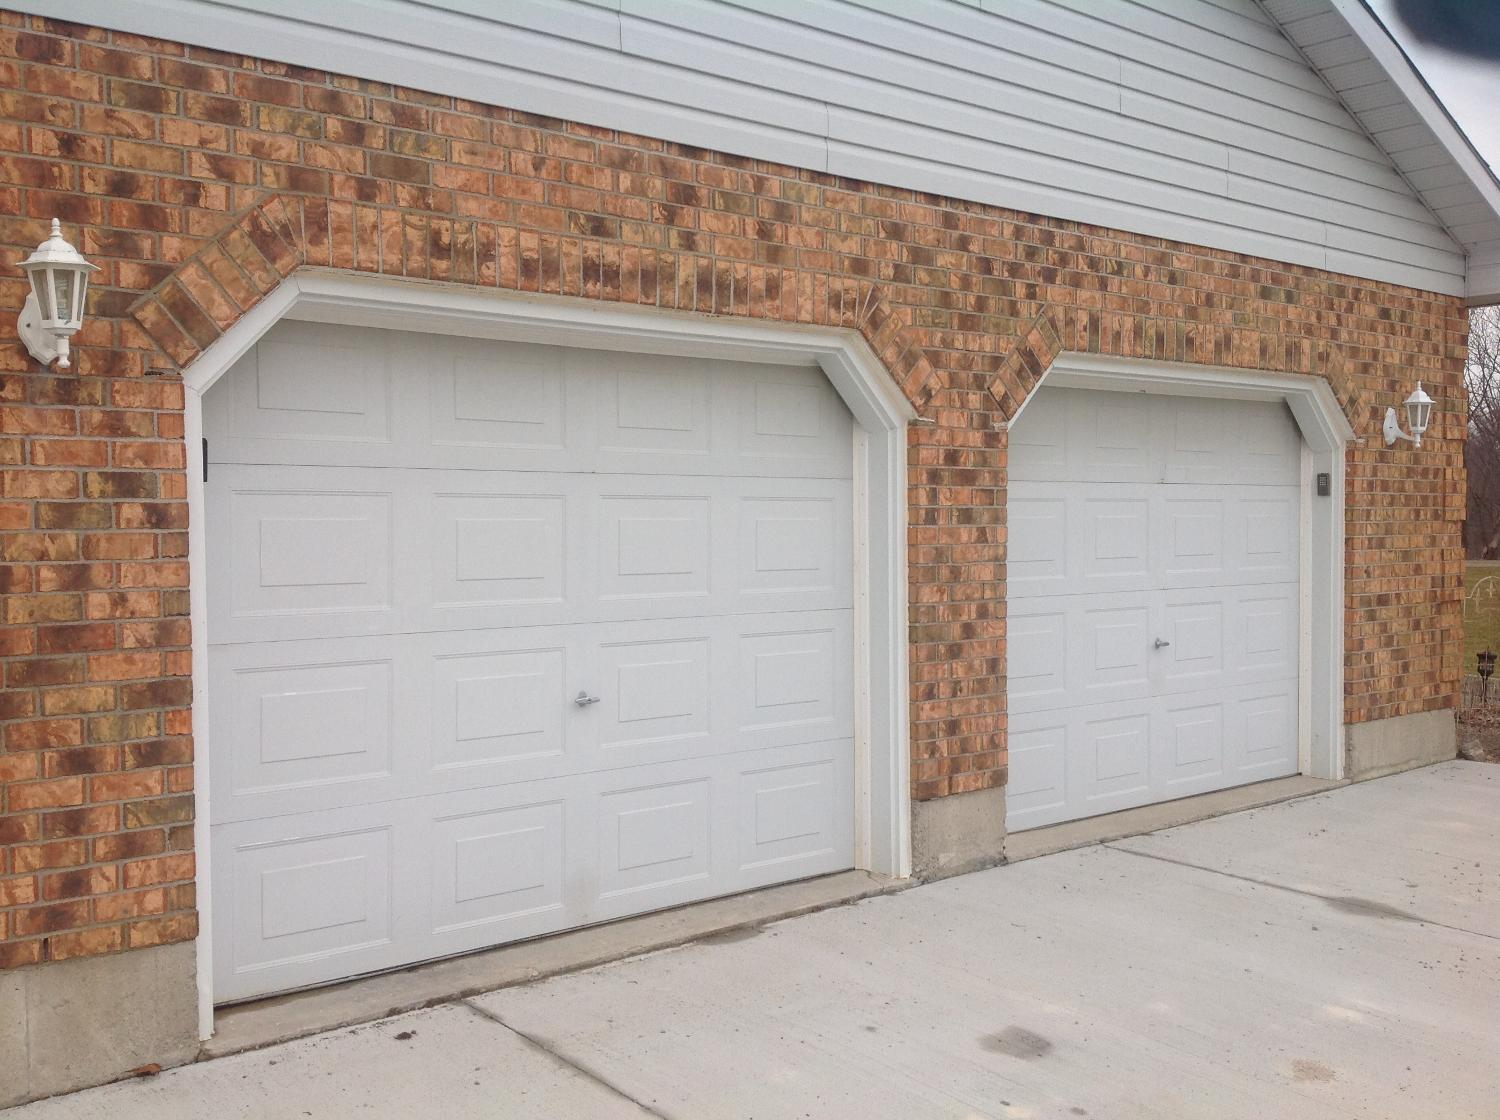 1120 #8A5D41 Find More 9x7 Garage Doors With Stanley Openers 250 Each Set For Sale  image Stanley Garage Doors Residential 37931500